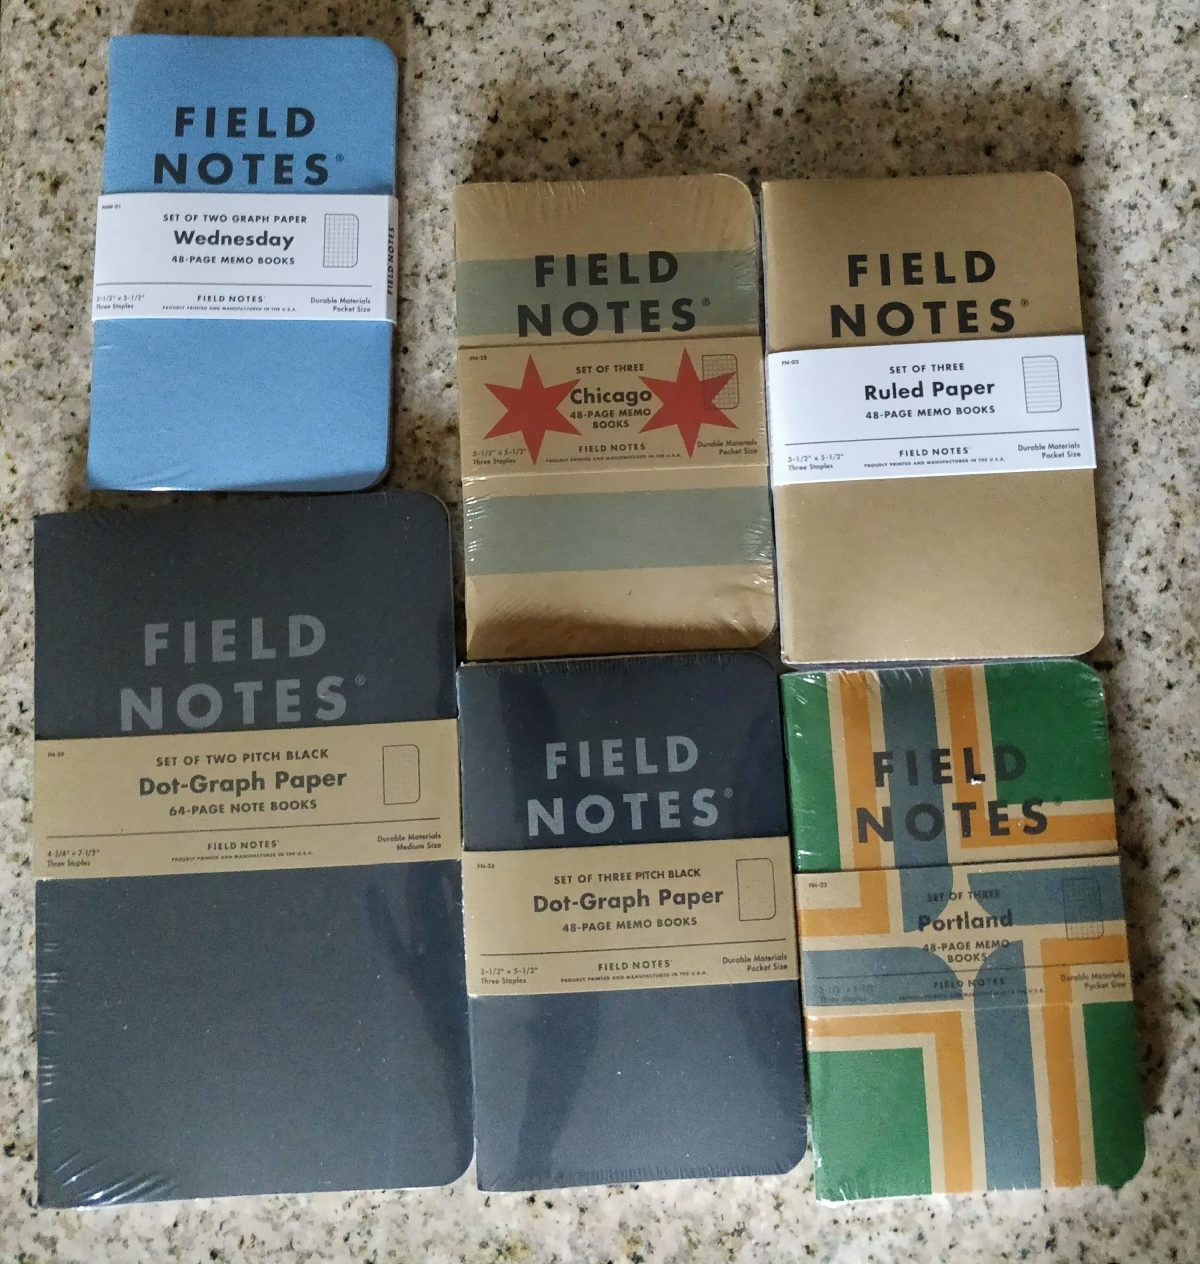 Field Notes pocket notebooks have arrived!